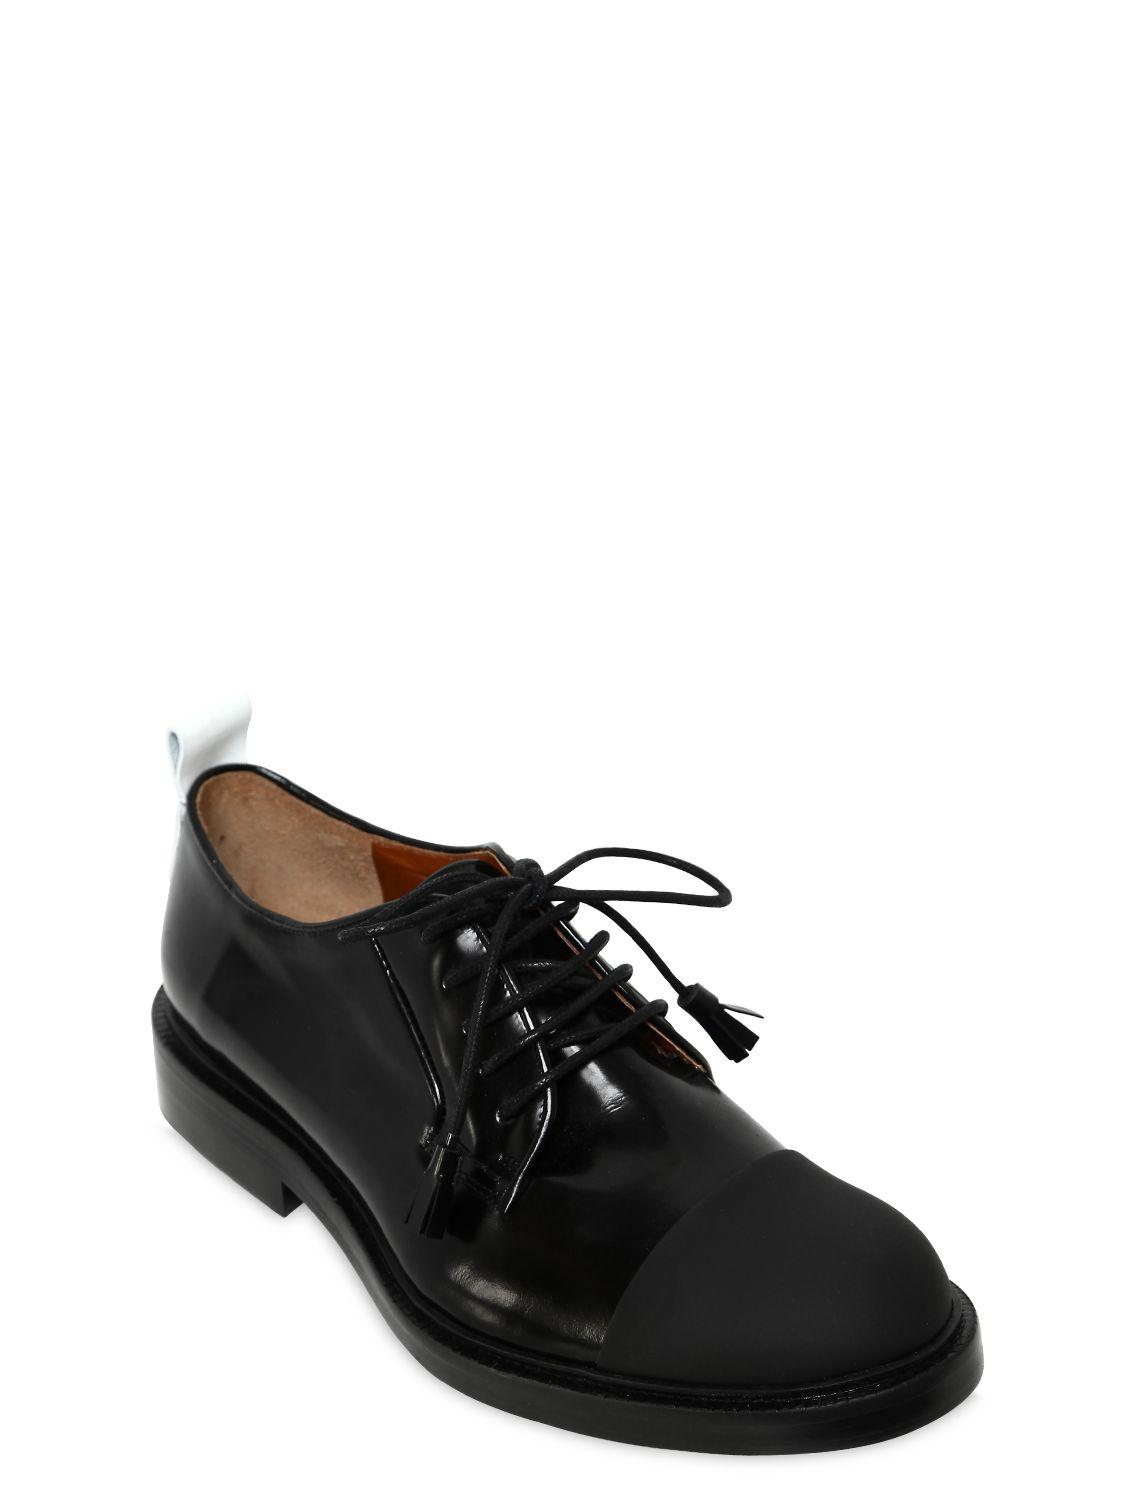 Joseph 20MM BRUSHED LEATHER LACE-UP SHOES ATP4LGLaQK